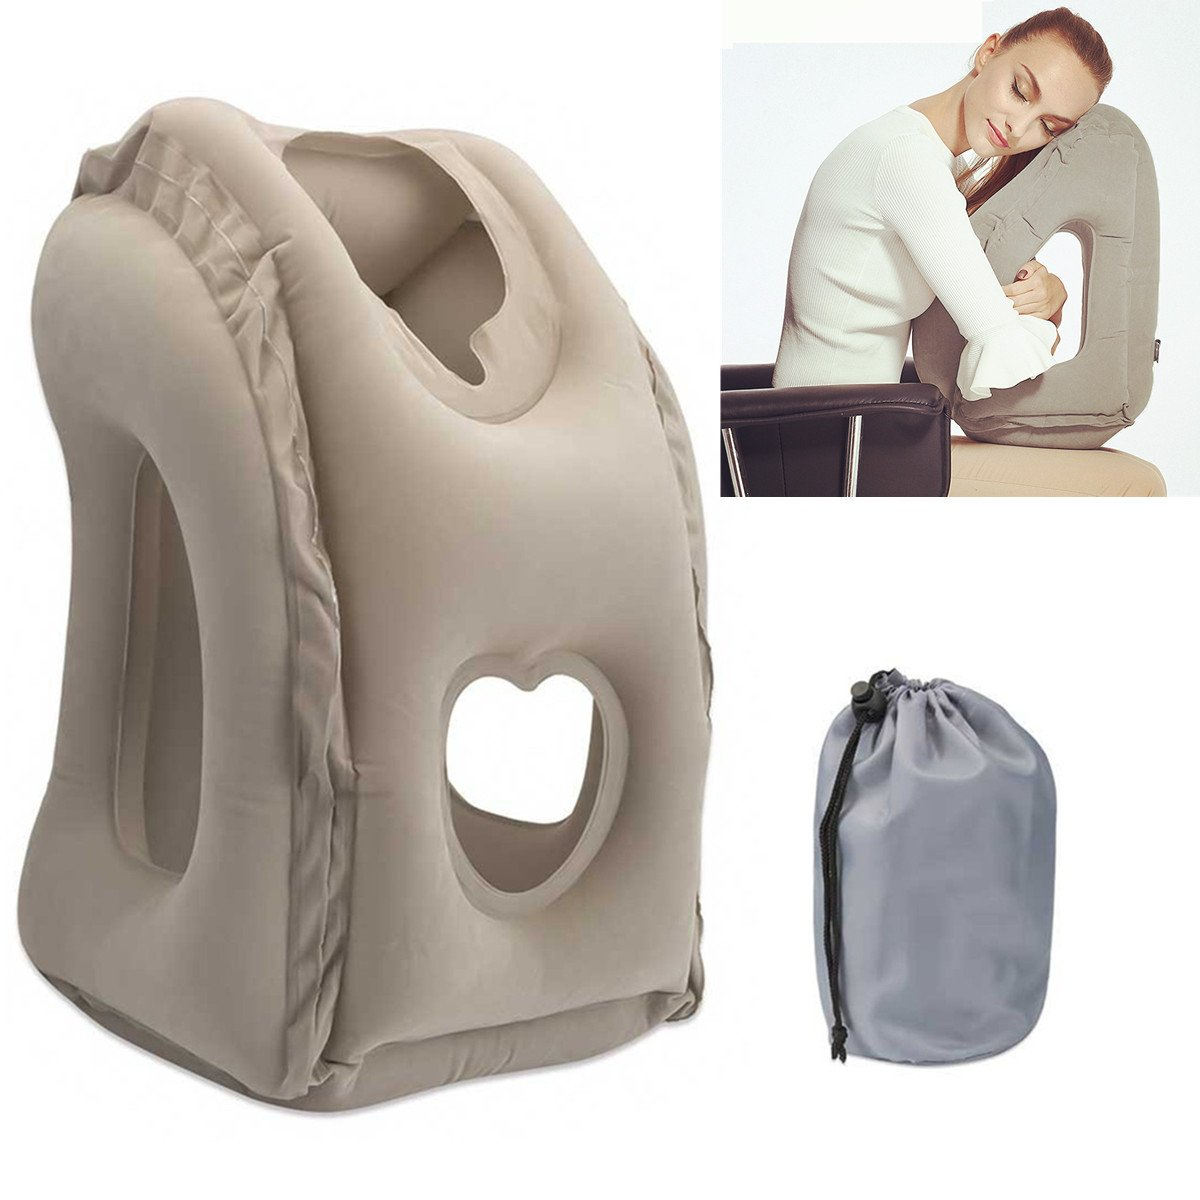 Inflatable Travel Pillow,SGODDE Comfortable Ergonomic and Portable Head Neck Rest Pillow,Patented Design,Best Travel Pillow for Airplanes,Cars,Buses, Trains, Office Napping, Camping 589D836B6B7B8FED